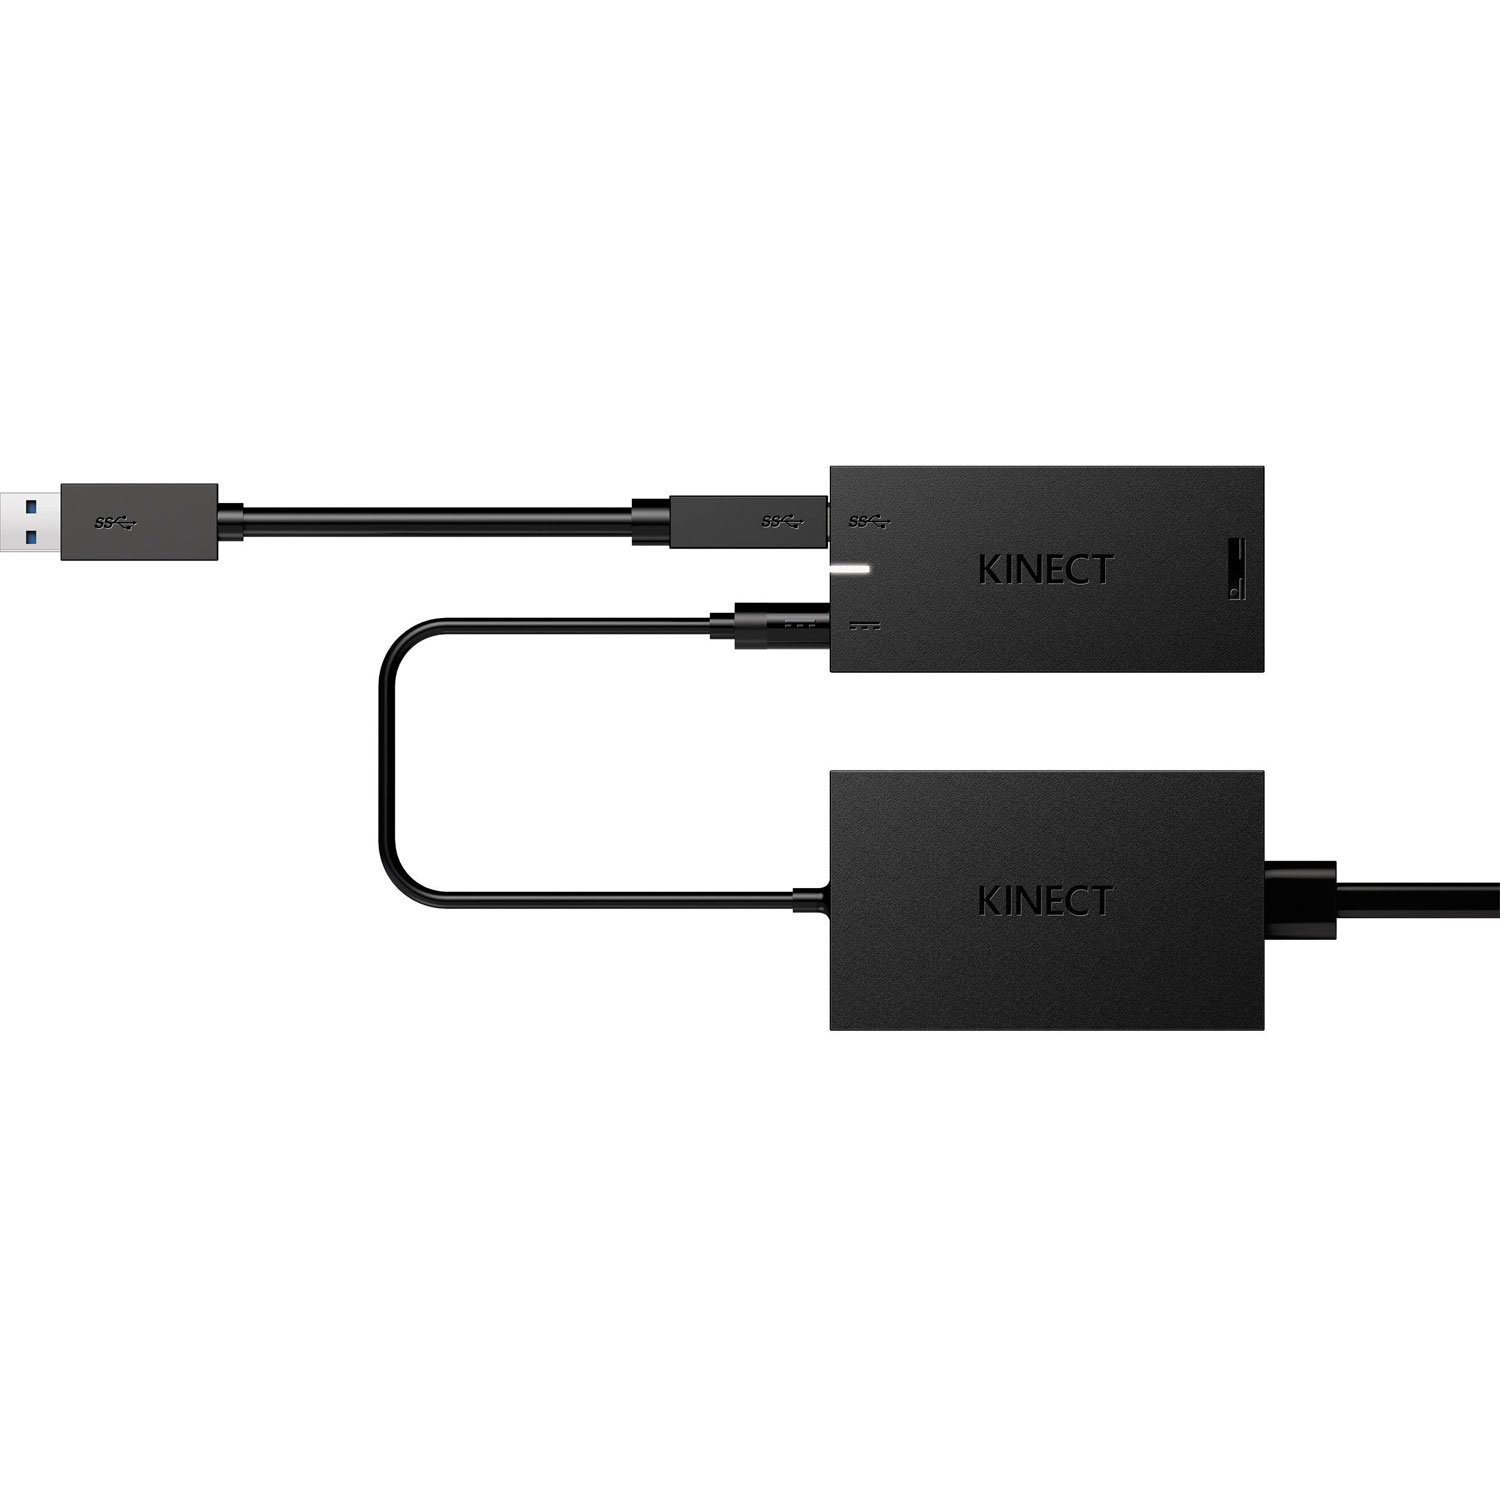 Xbox Kinect Adapter for Xbox One S and Windows 10 PC by Microsoft